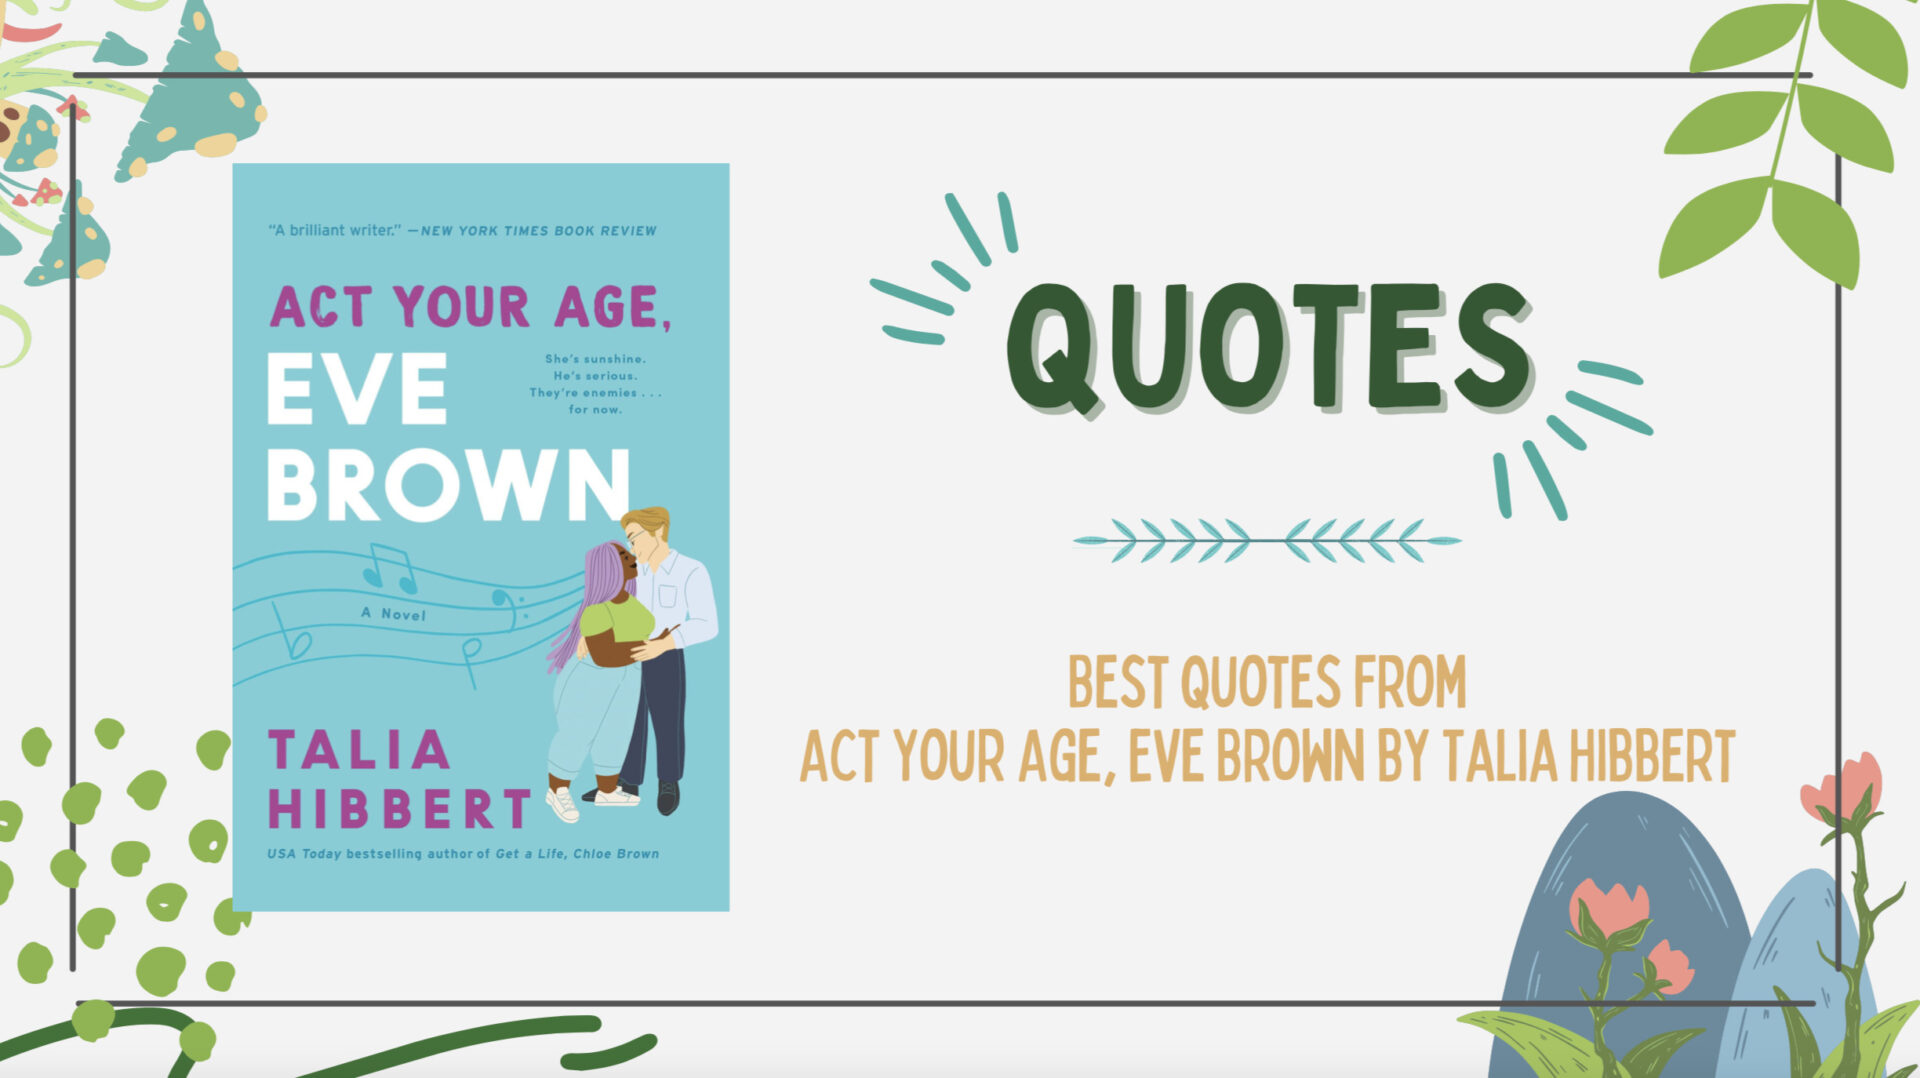 13 of the Best Quotes from Act Your Age, Eve Brown by Talia Hibbert